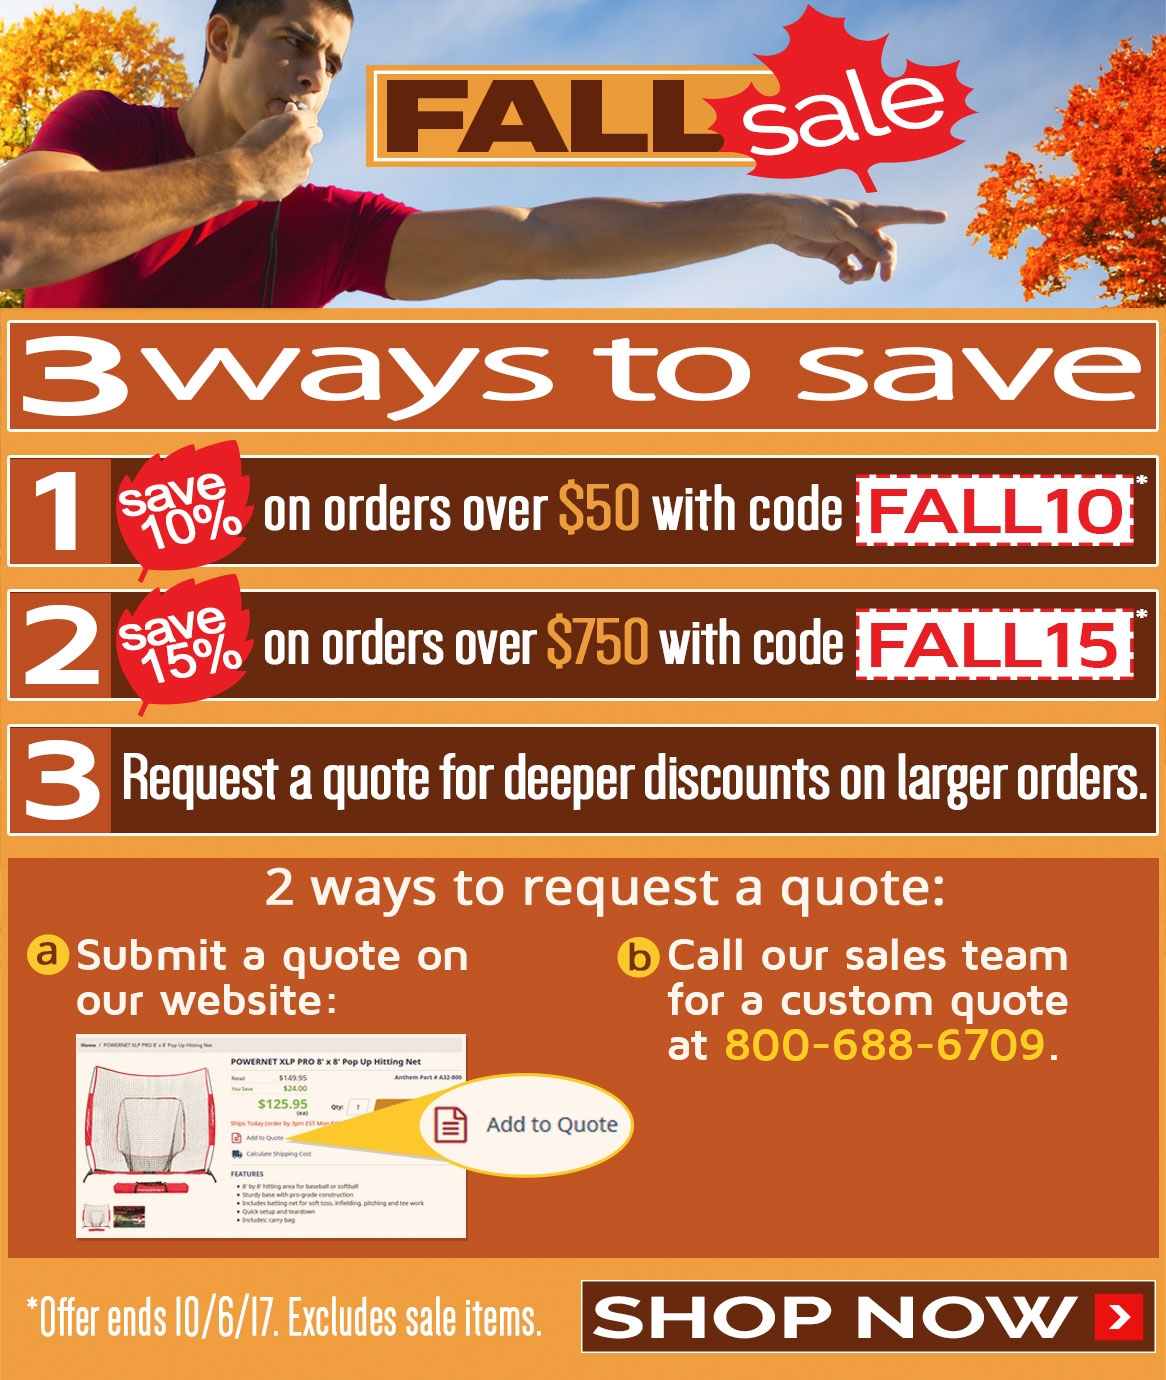 Fall Sale - Save Up To 15%!